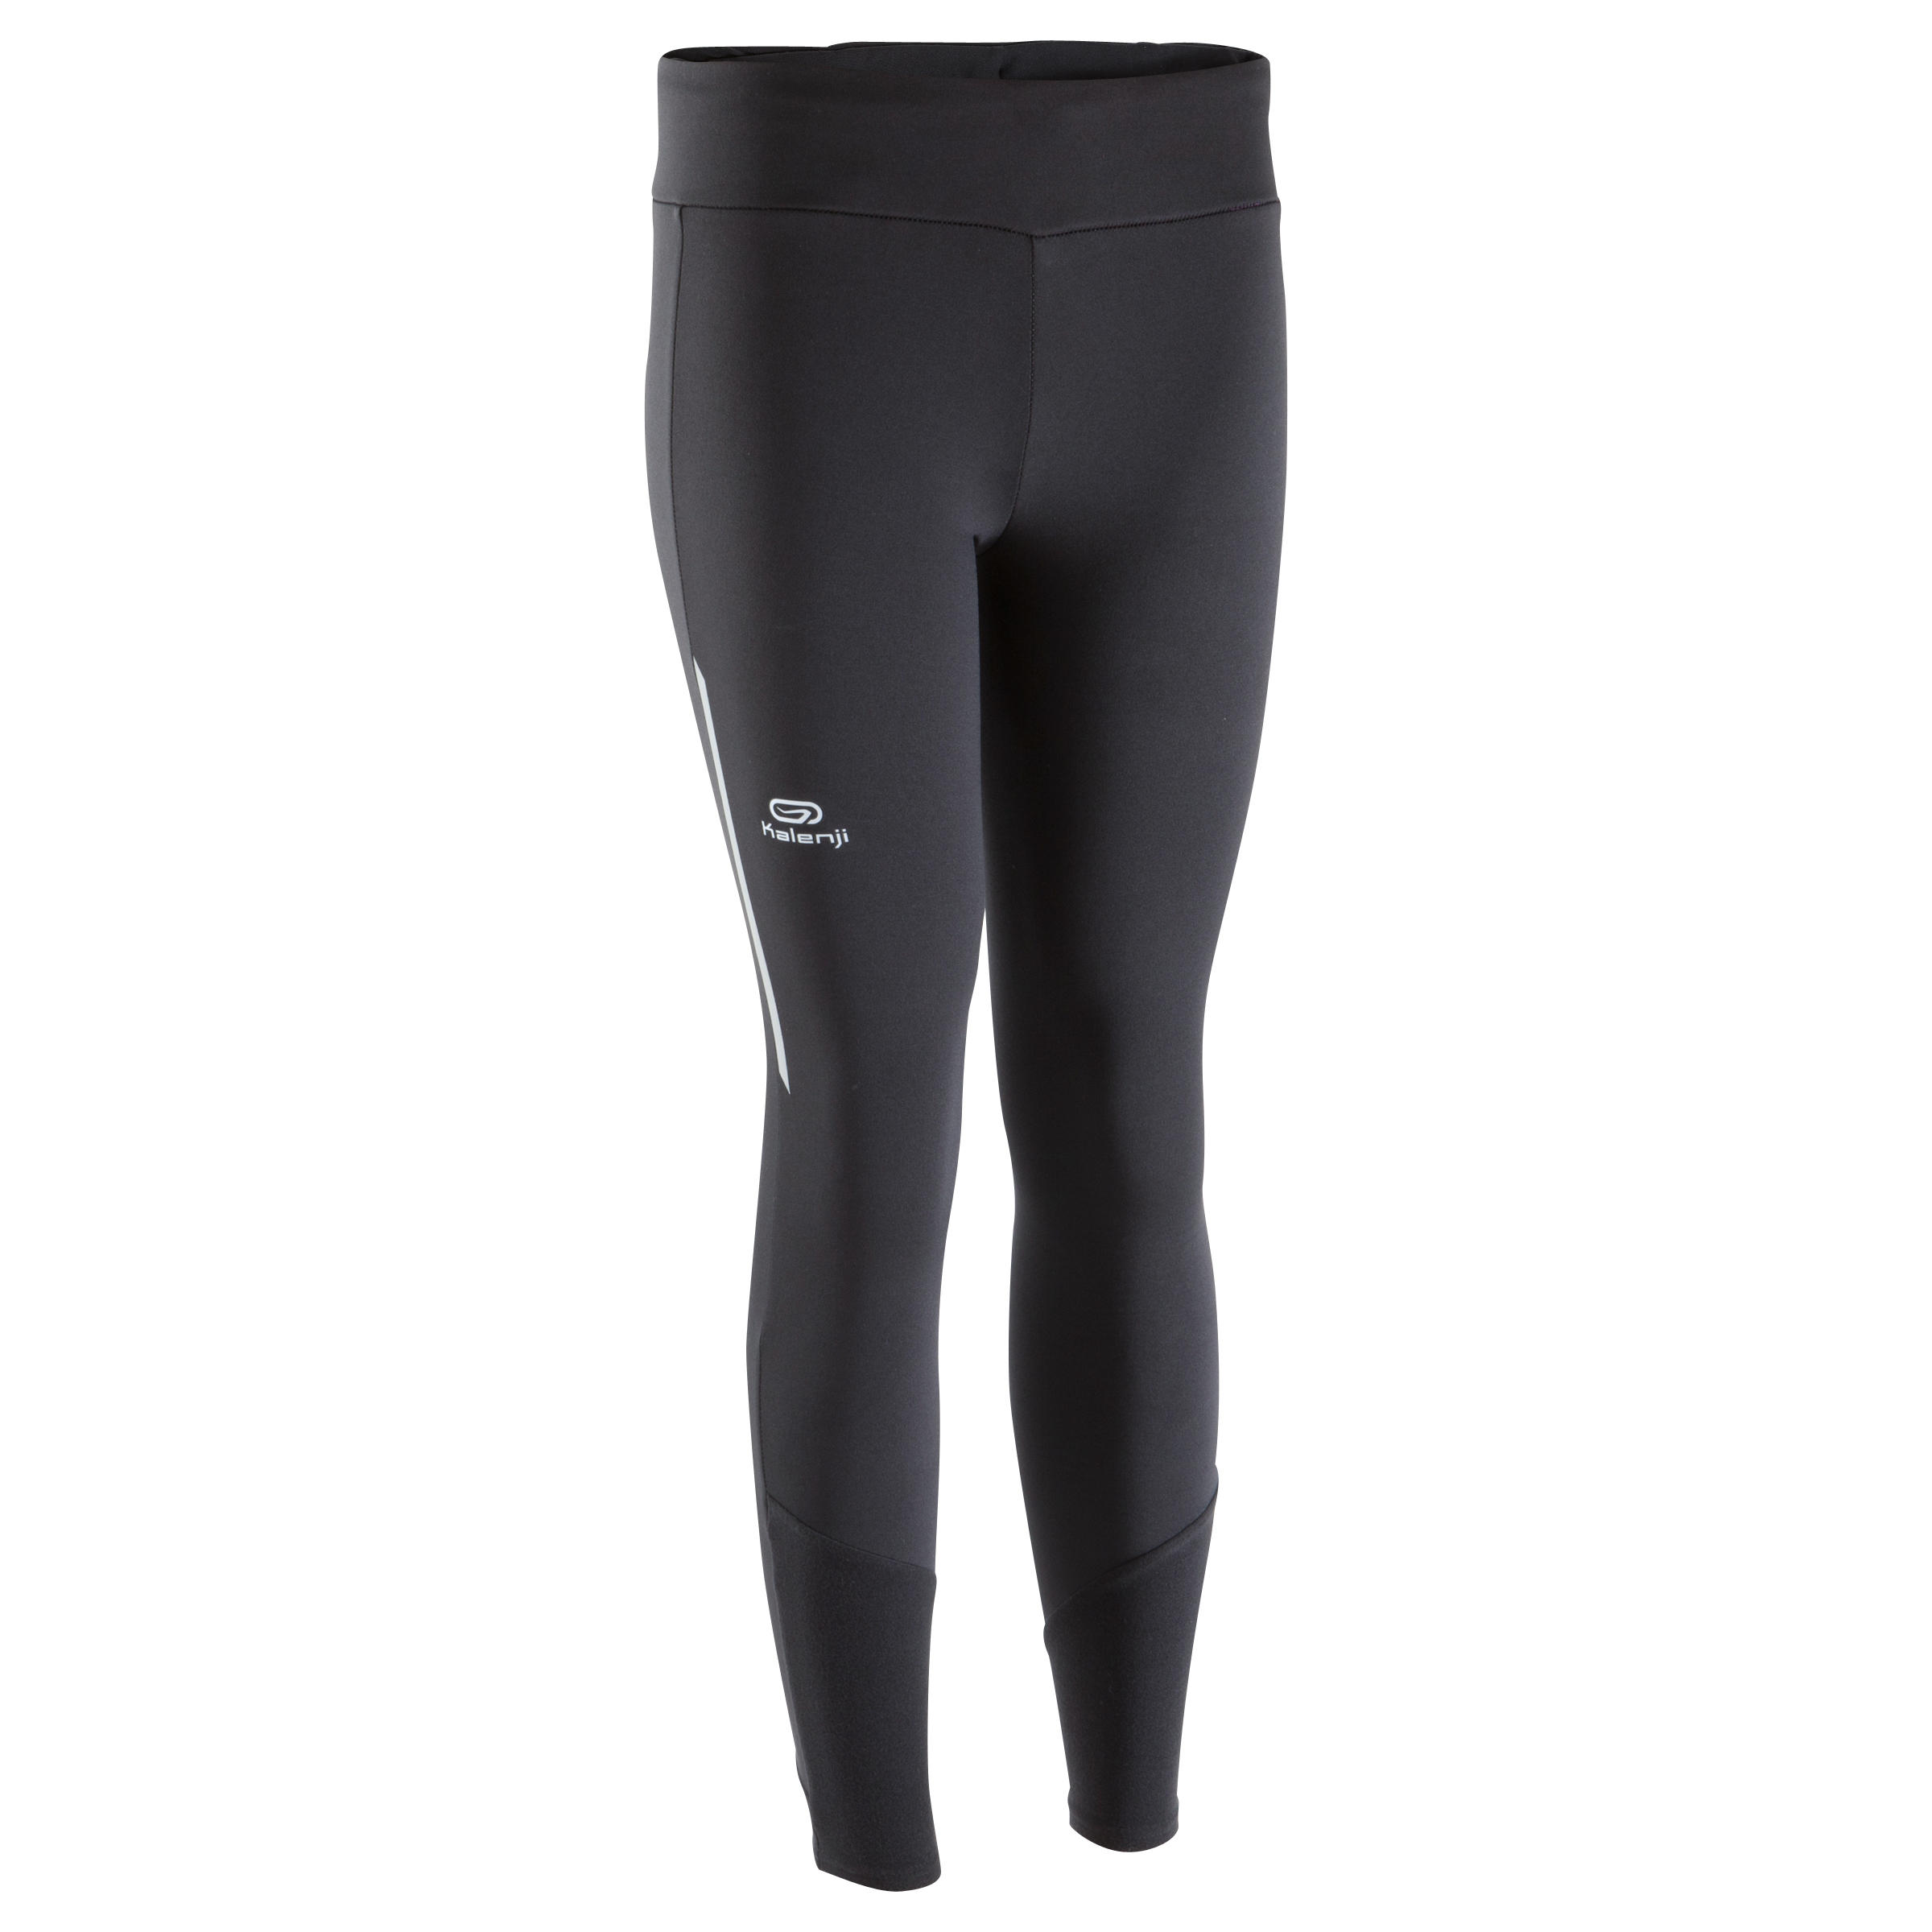 COLLANT JOGGING FEMME COURSE CHAUD NOIR